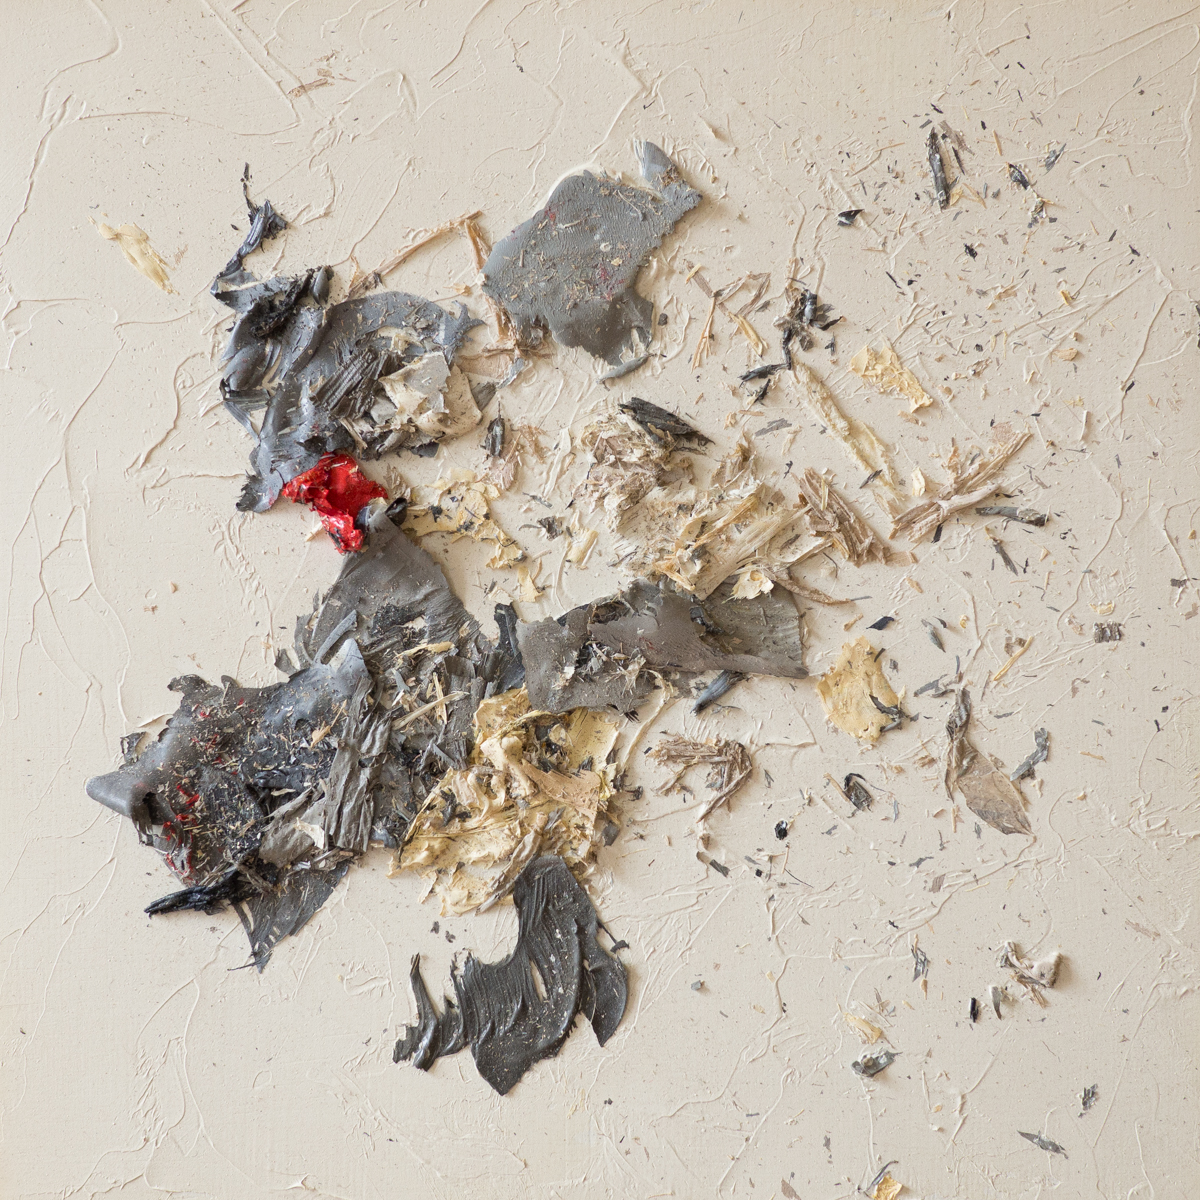 The Complexities of Emotions No.4   oils & oil paint scrapings on wood panel, 6 x 6